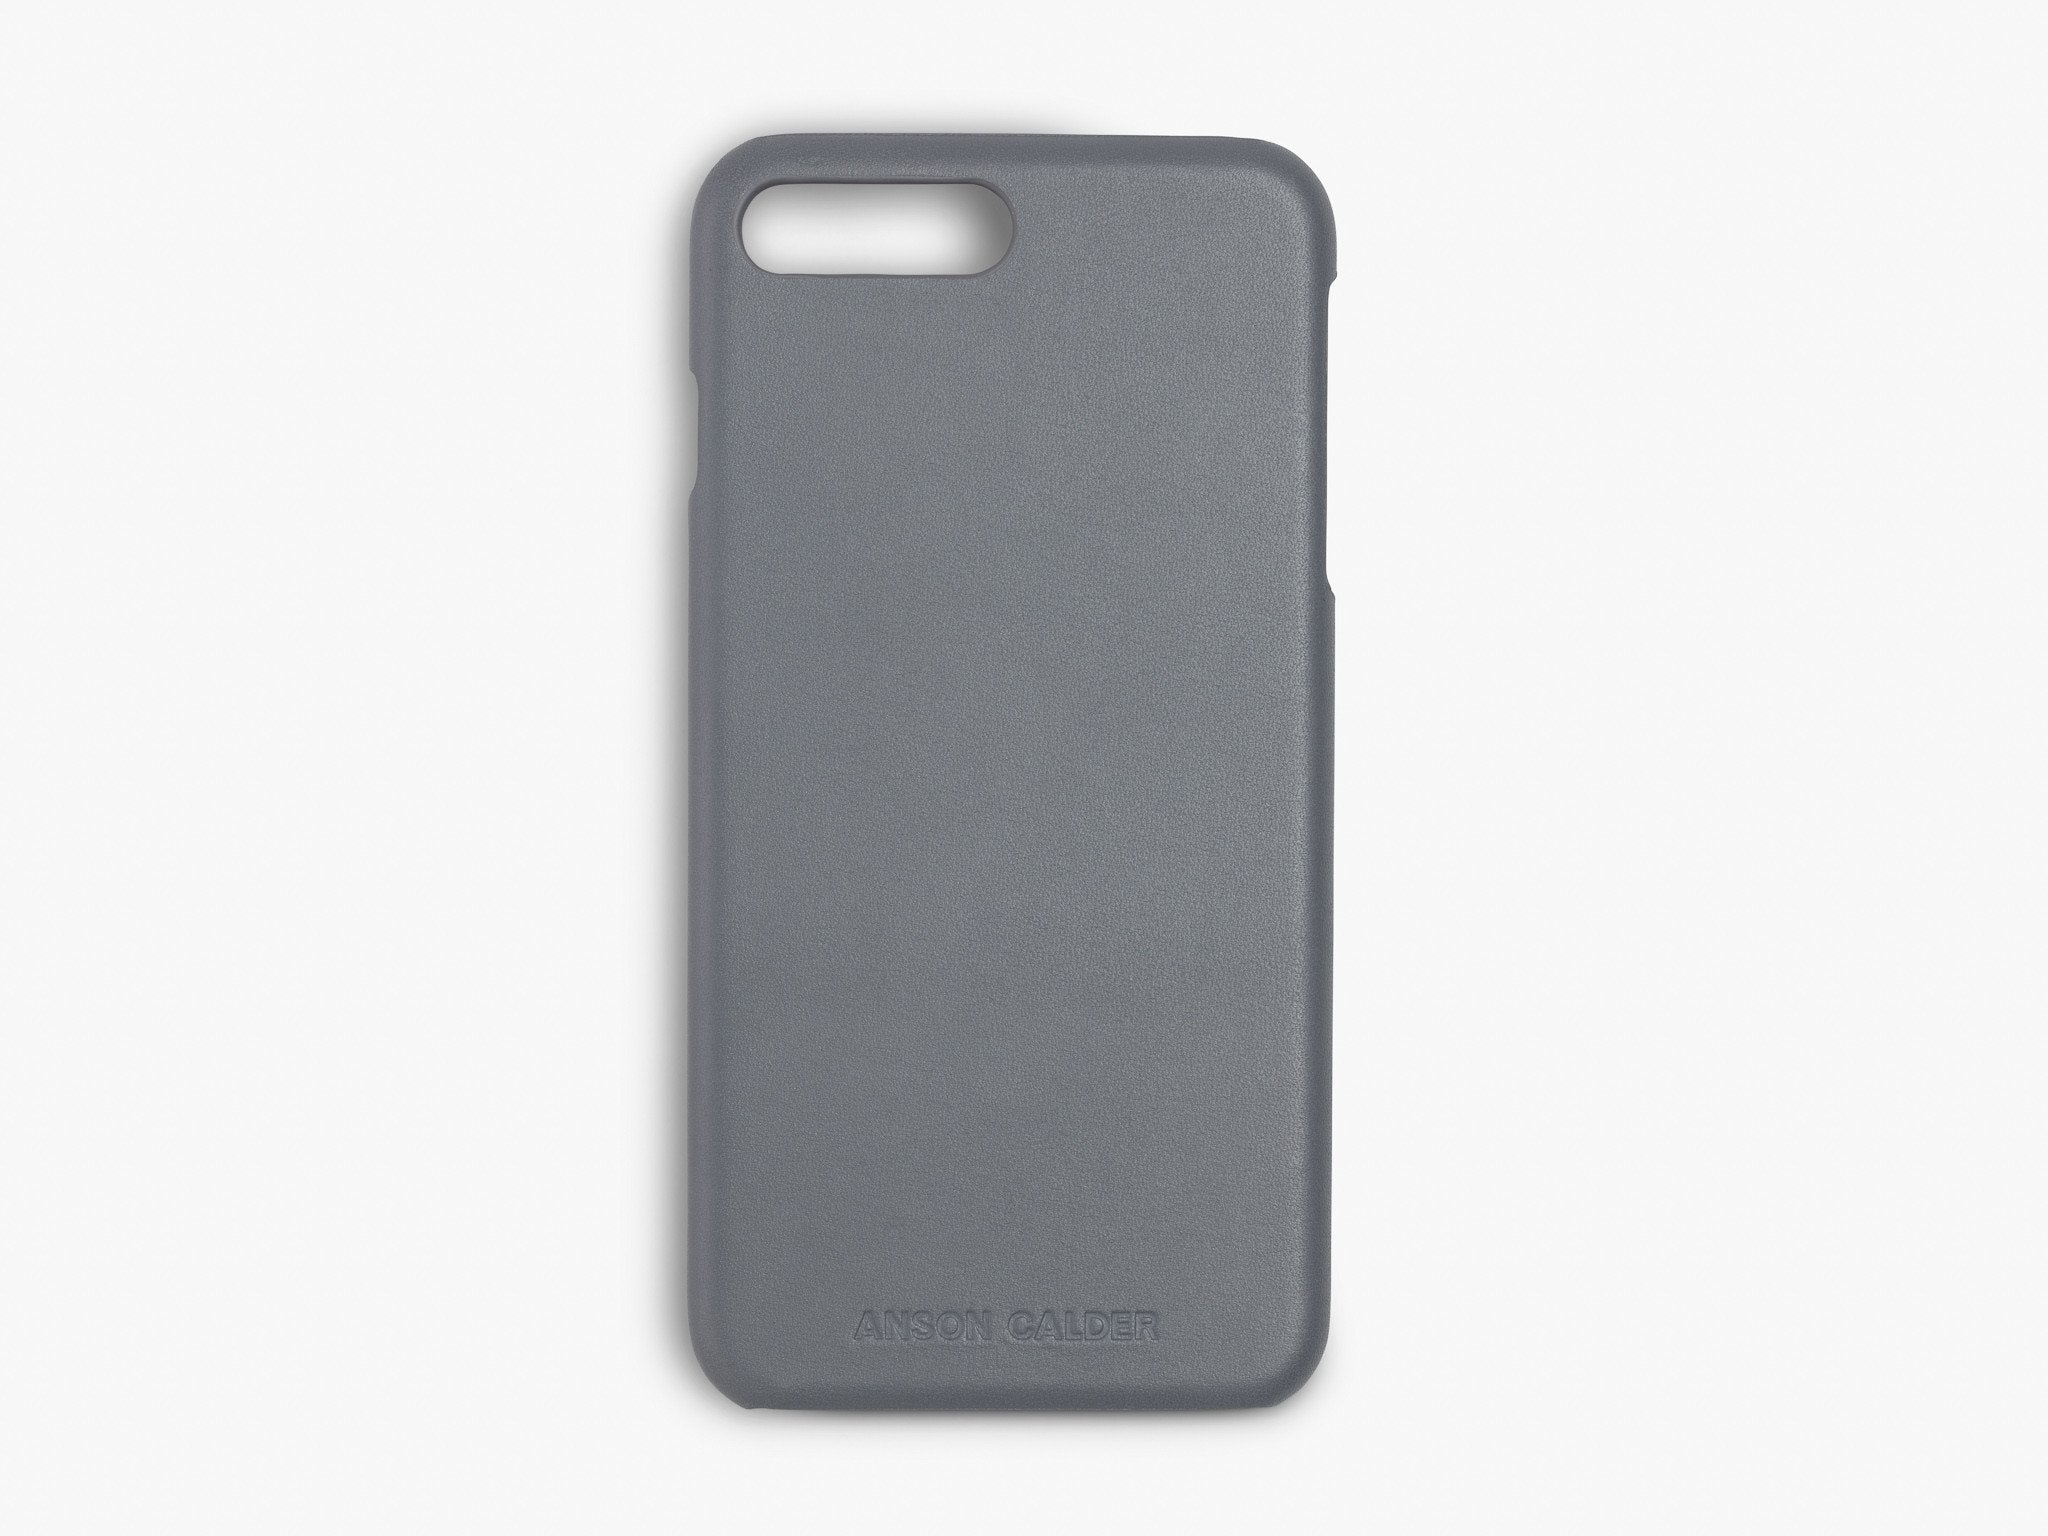 CALFSKIN iPHONE CASE CASES ANSON CALDER iPhone 6 Plus !iphone7plus _Steel-Grey